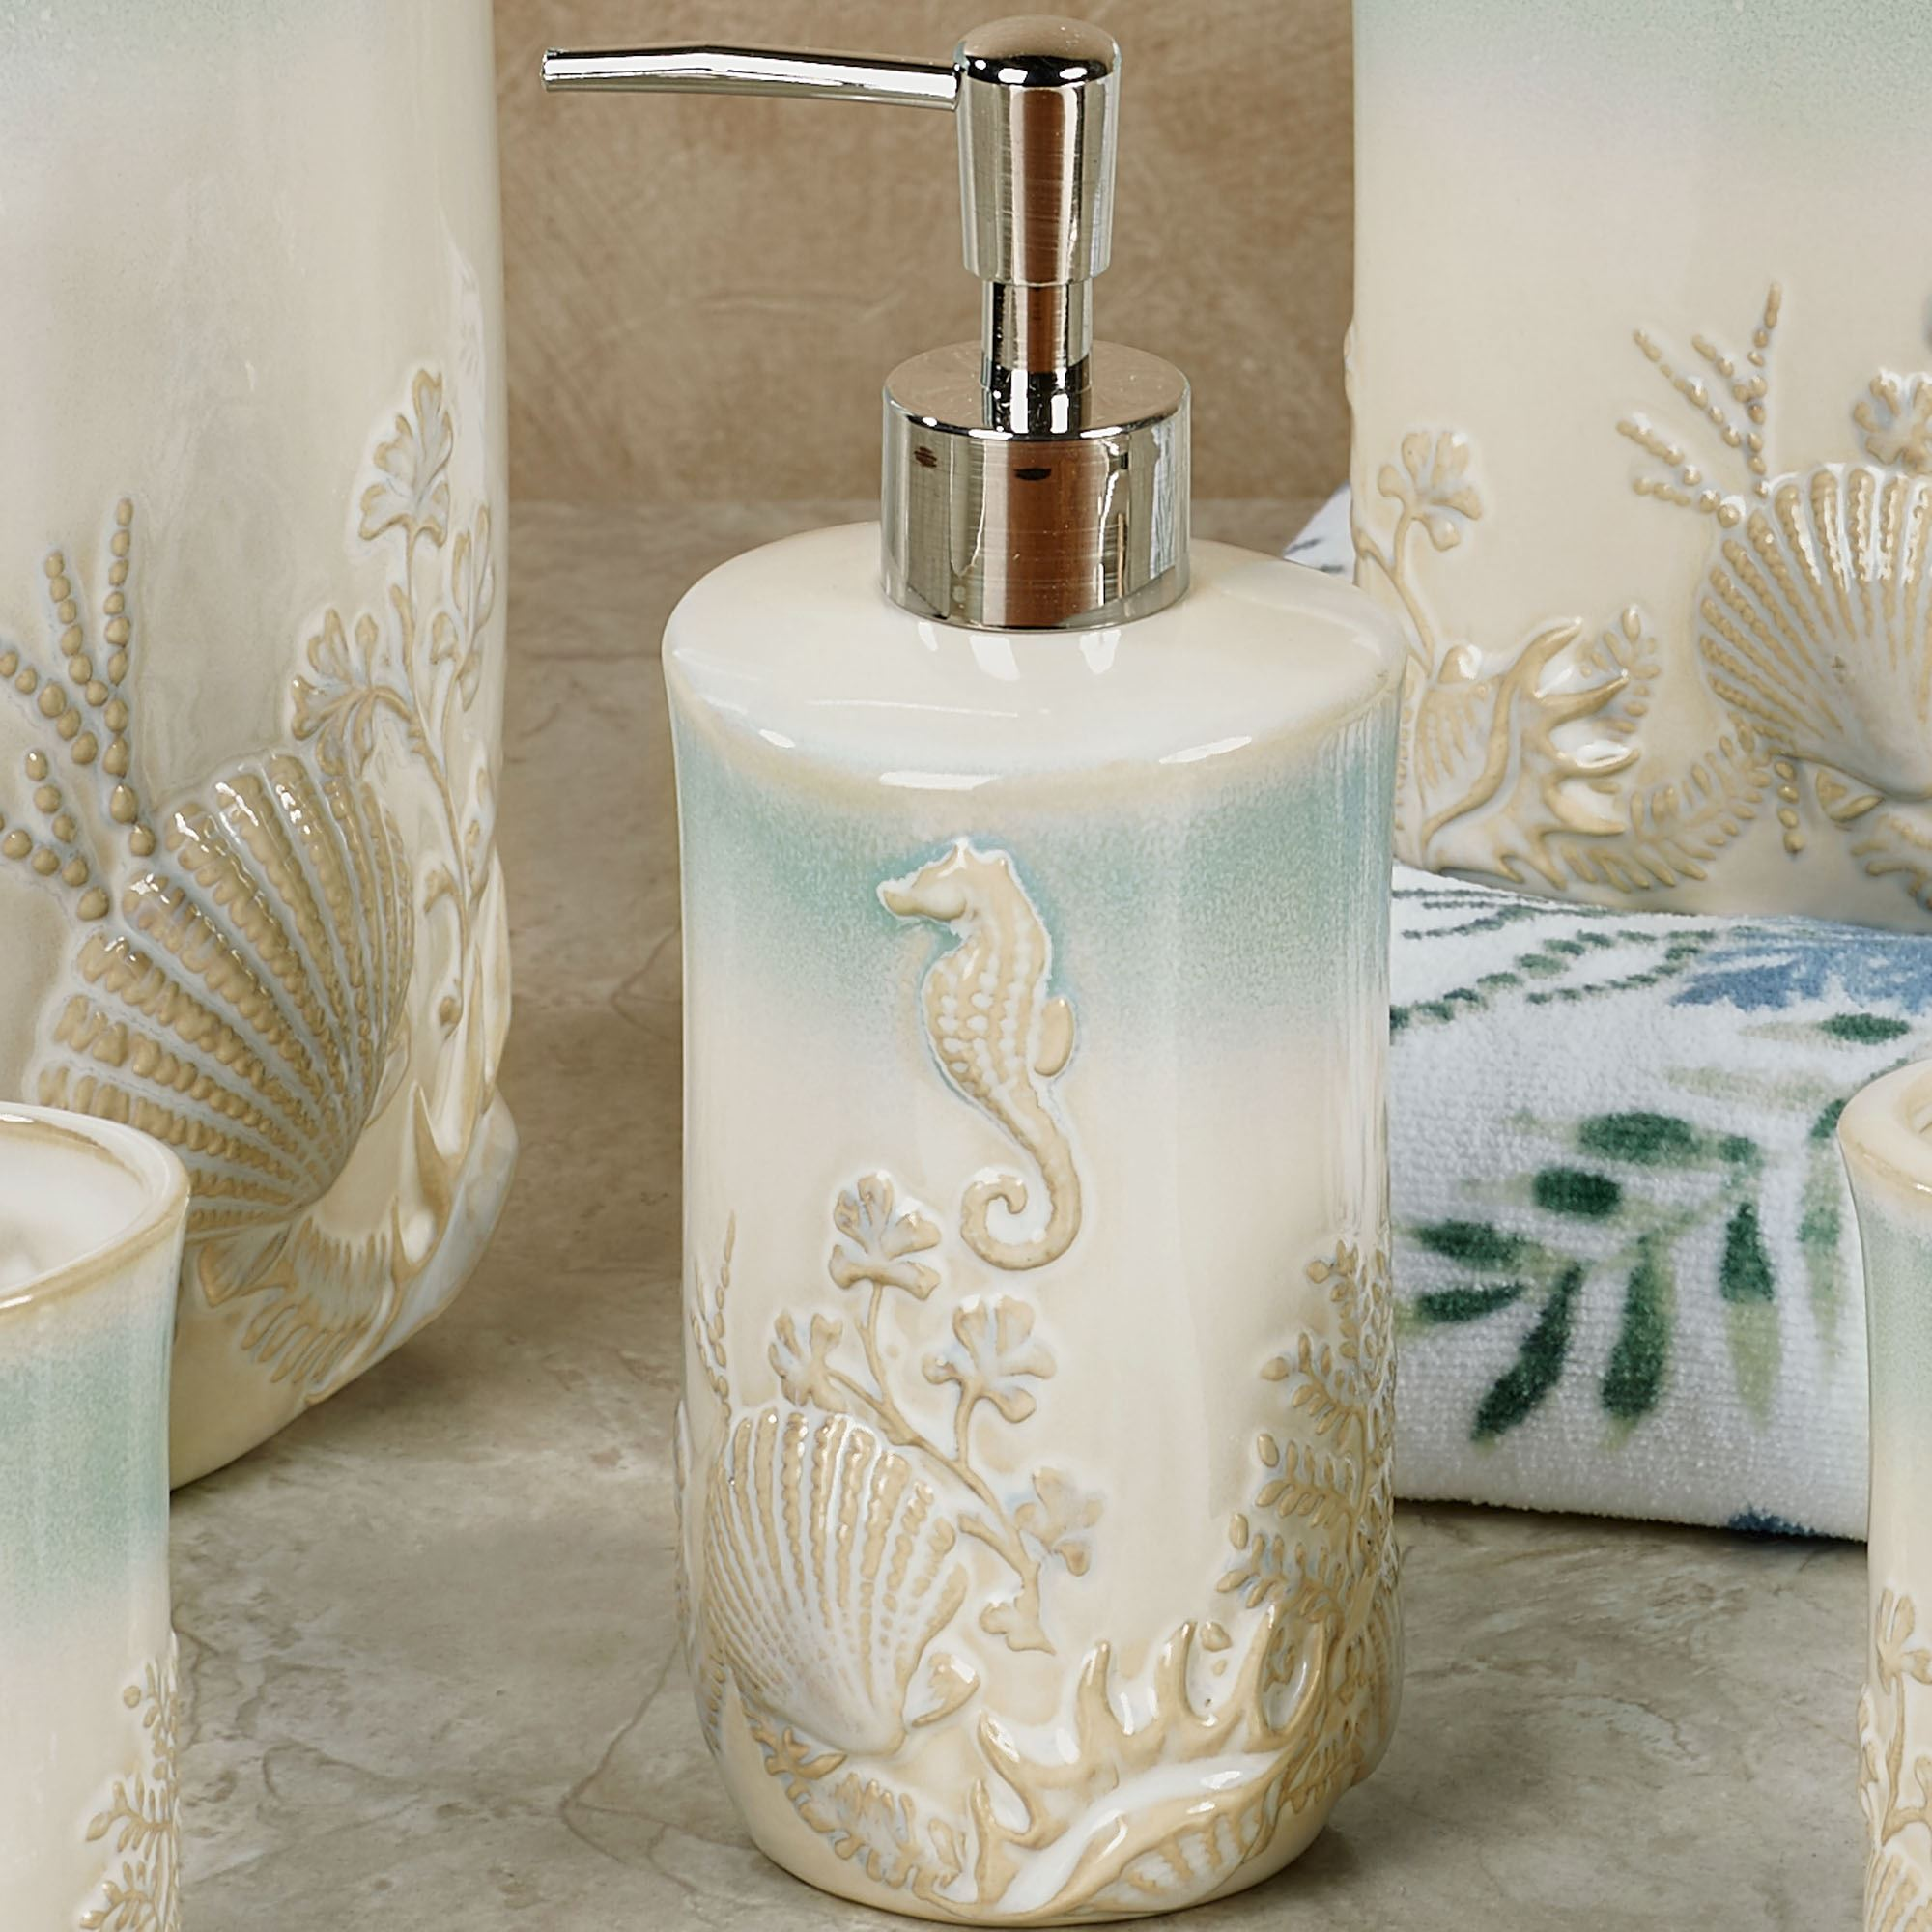 Pearl Seaweed Ombre Ocean Themed Bath Accessories